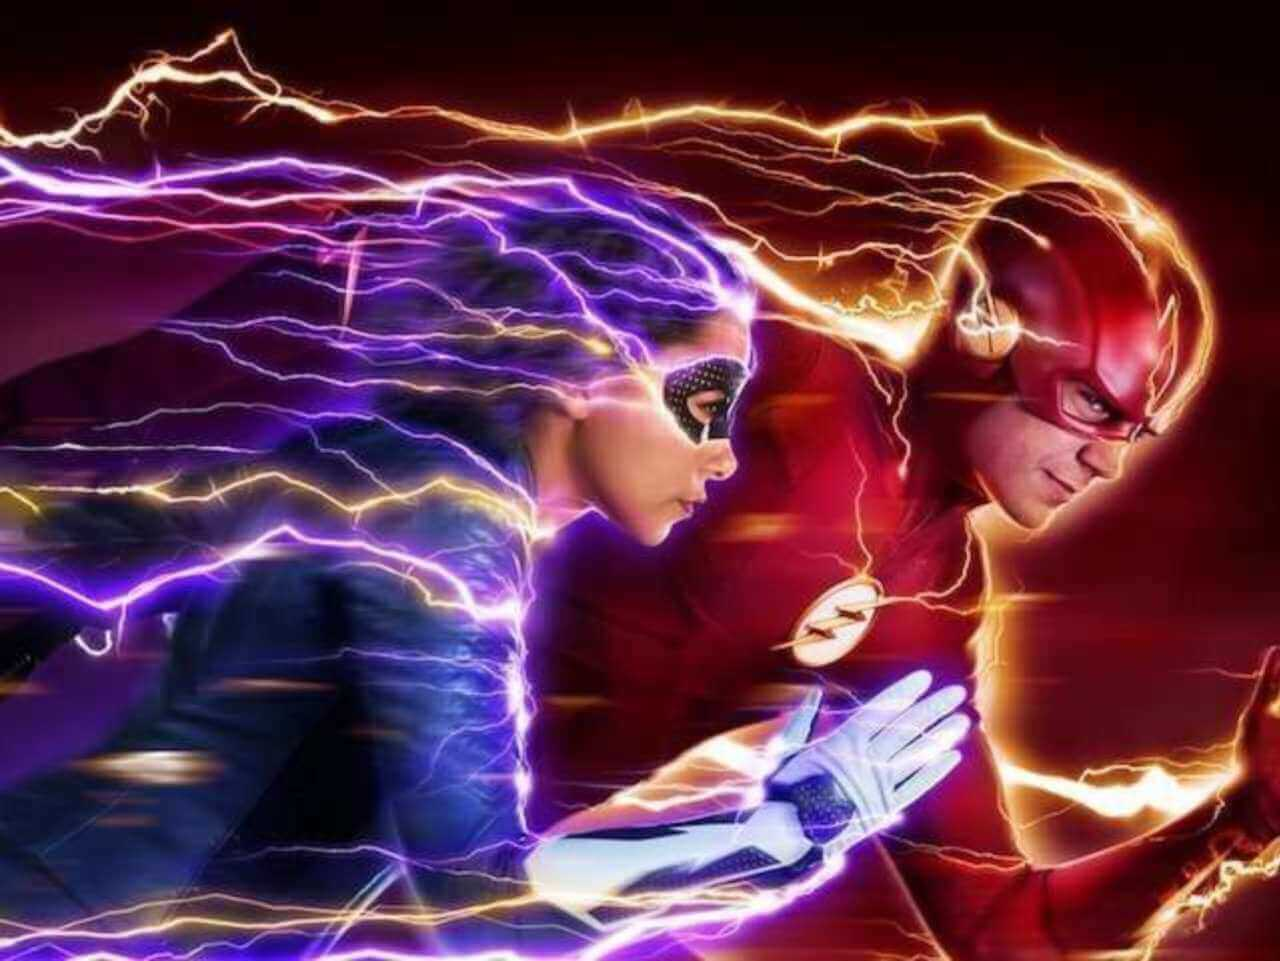 the flash season 5 episode 12 release date, spoilers, promo